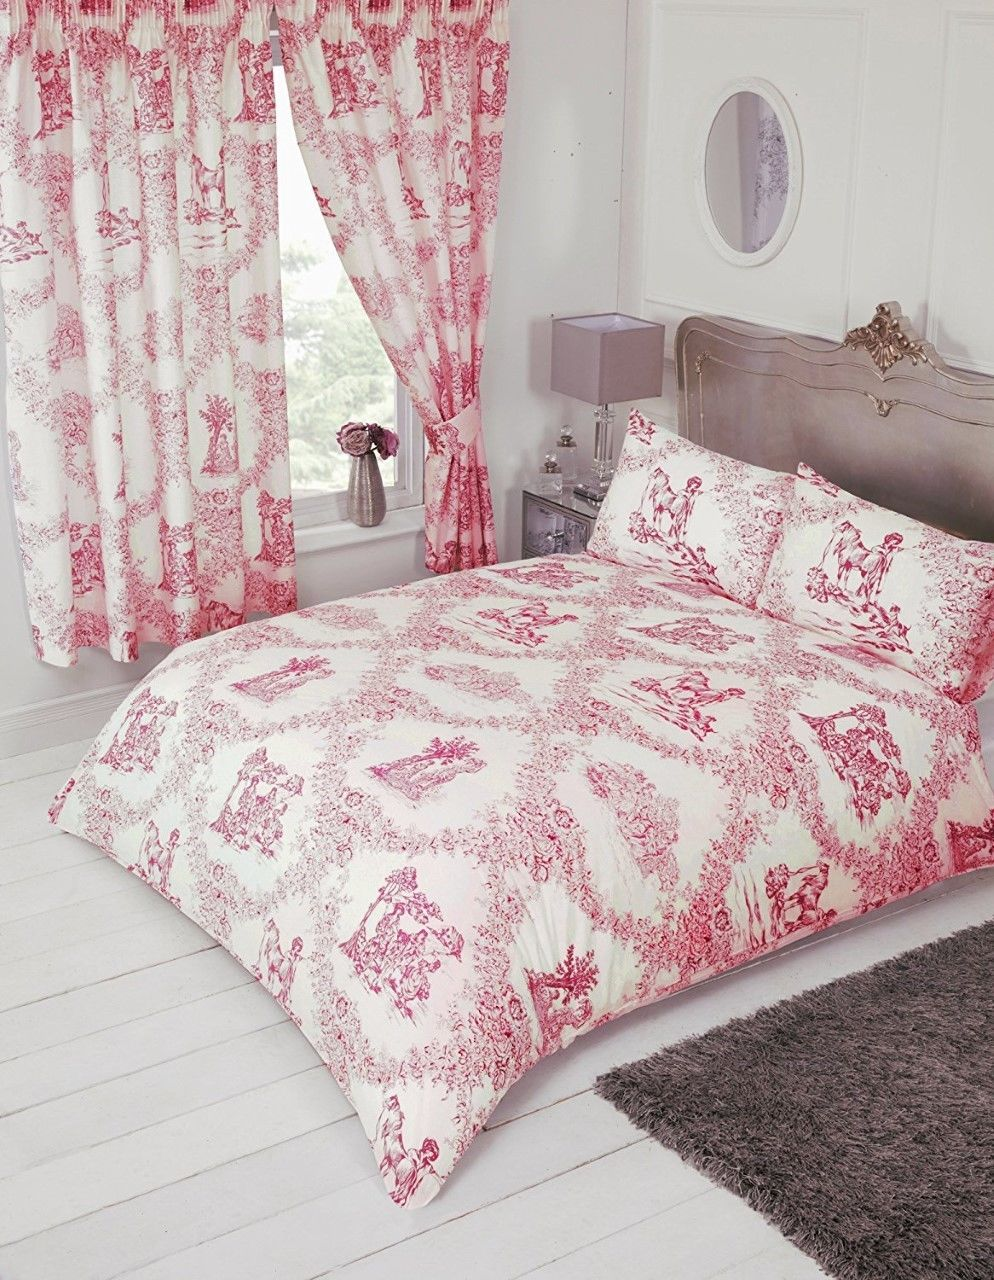 Traditional Toile De Jouy Duvet Cover Set From Century